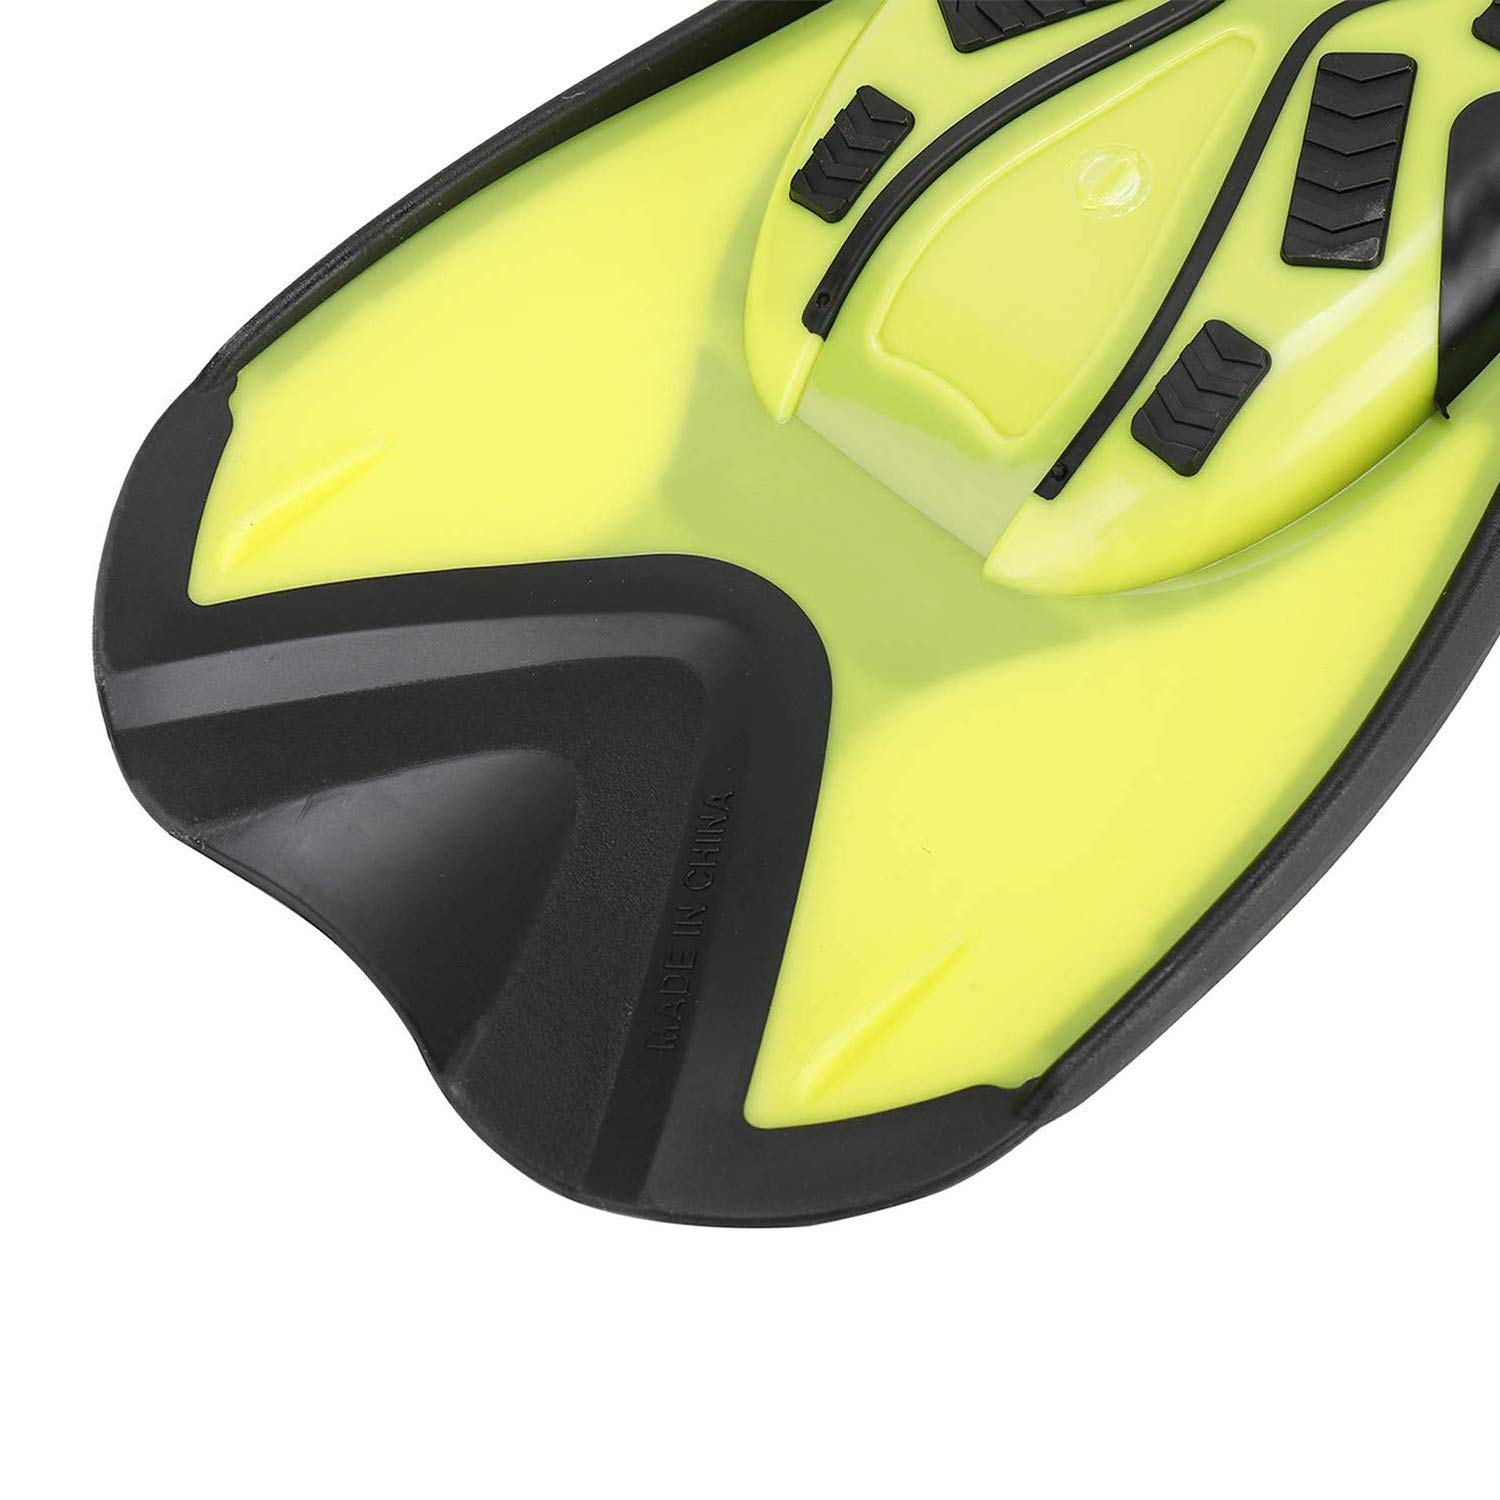 NovelBee Flippers Short Blade Floating Swimming Fins for Surfing Swimming Diving Snorkeling Watersports